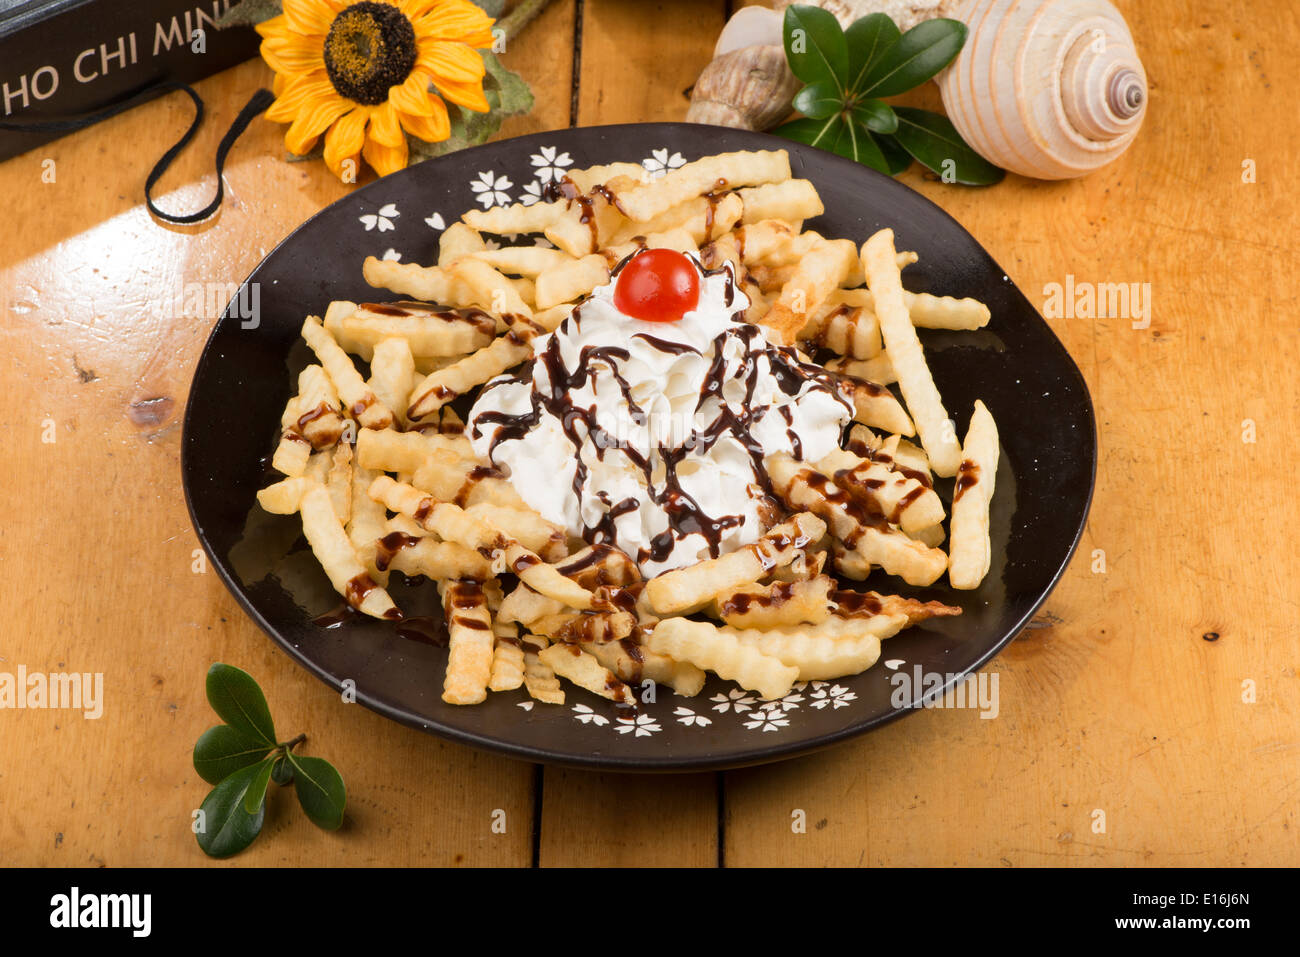 Potato chips with fresh cream and chocolate syrup, Chungju Korea - Stock Image